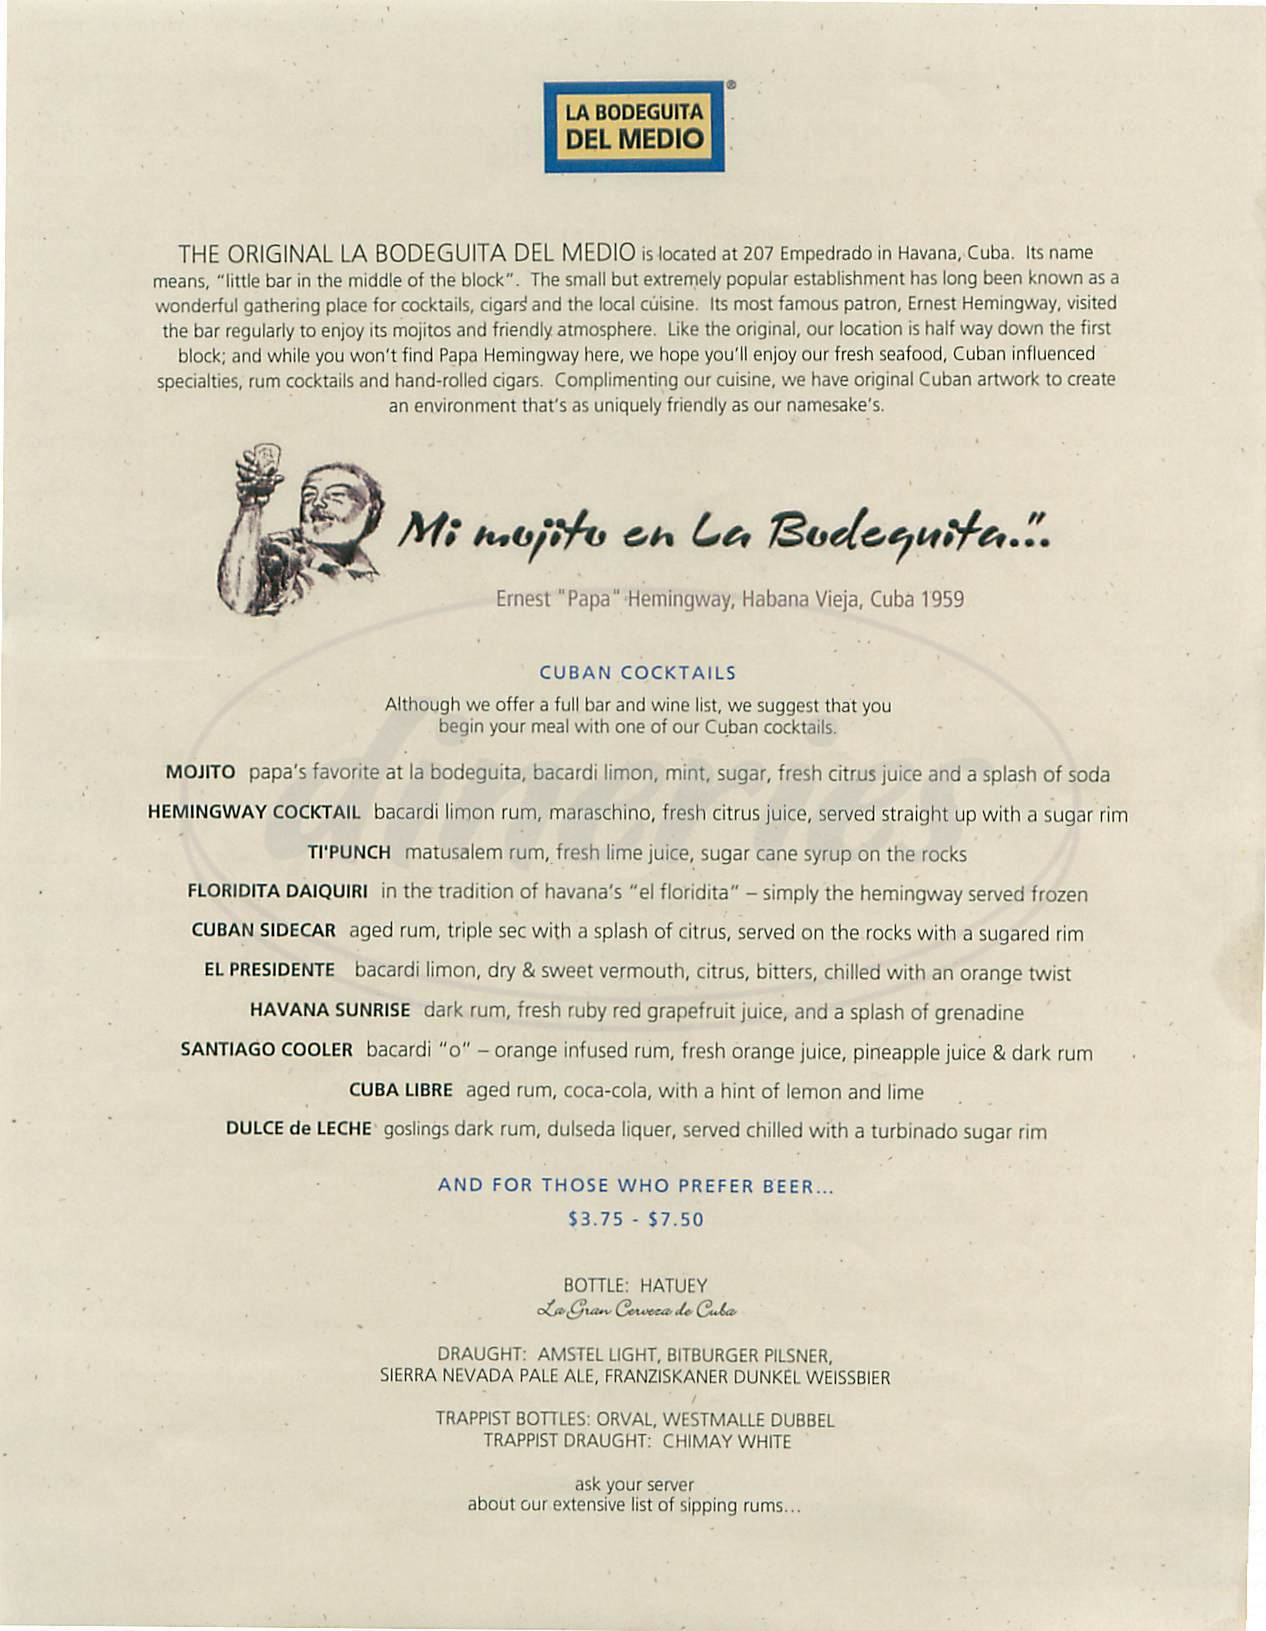 menu for La Bodeguita del Medio